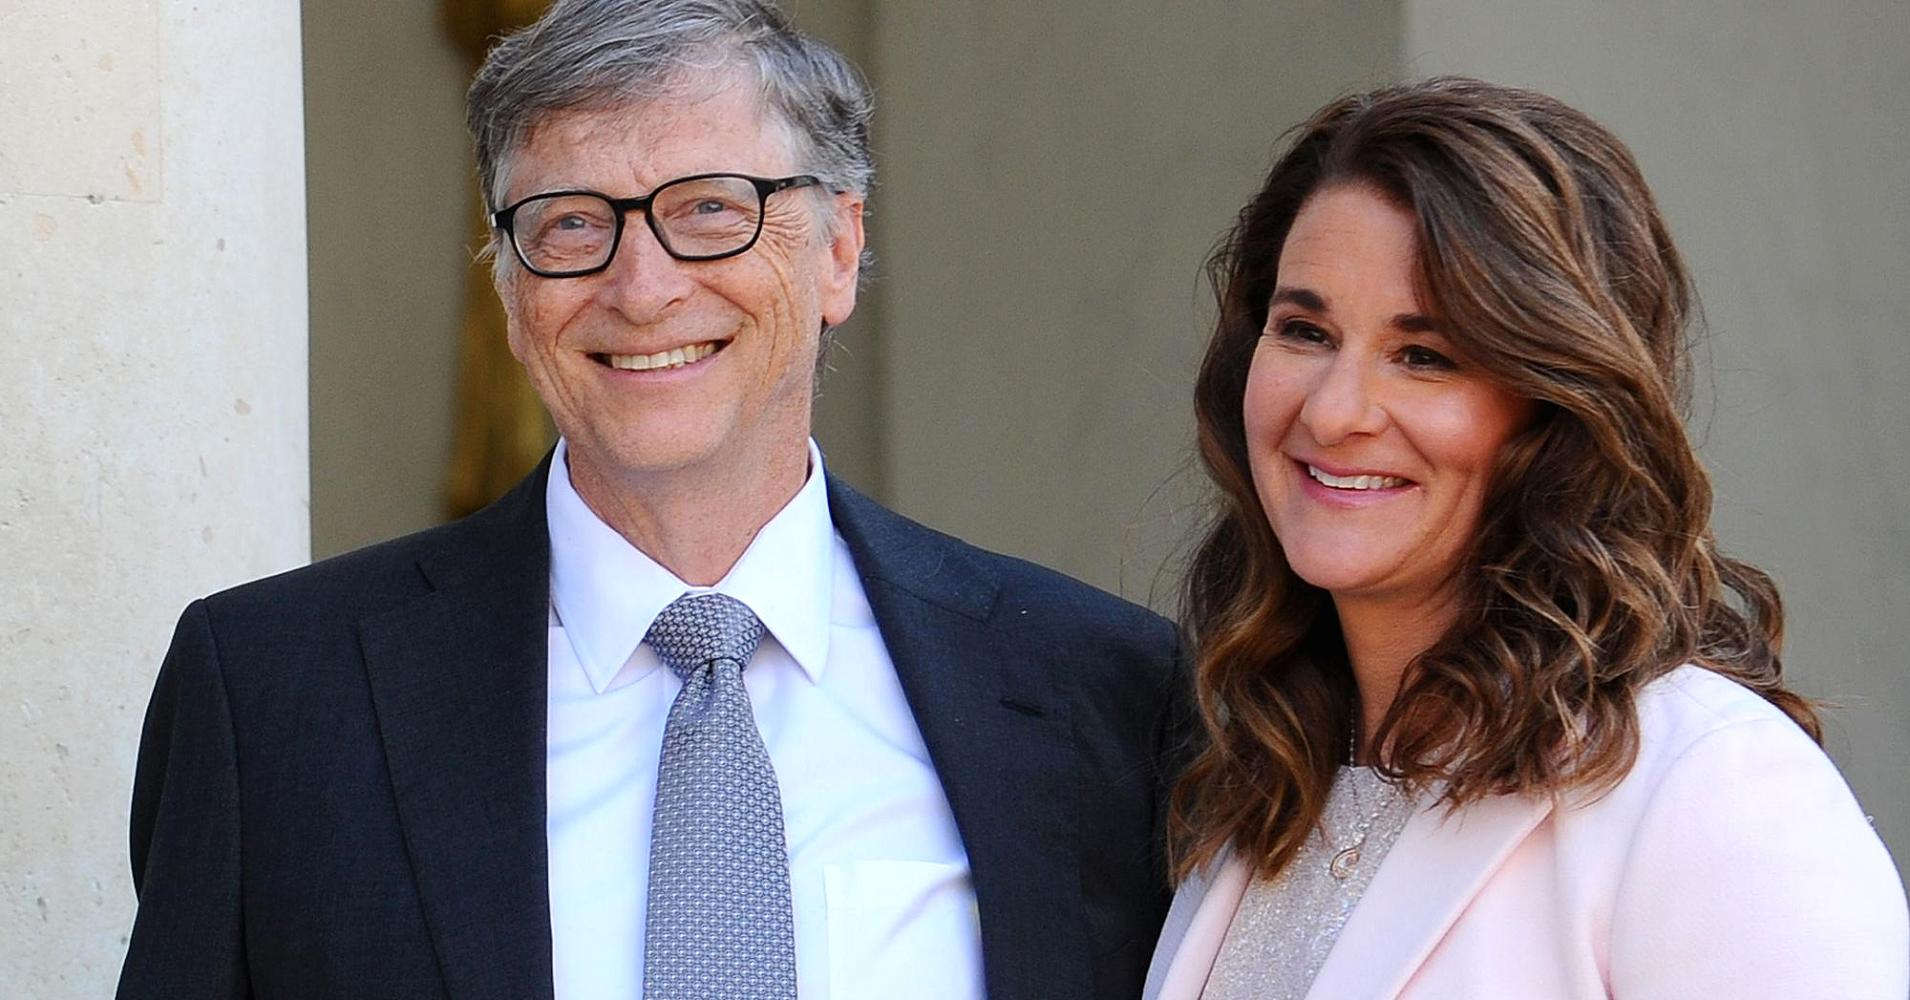 Bill Gates shares advice on how tech titans should deal with the government